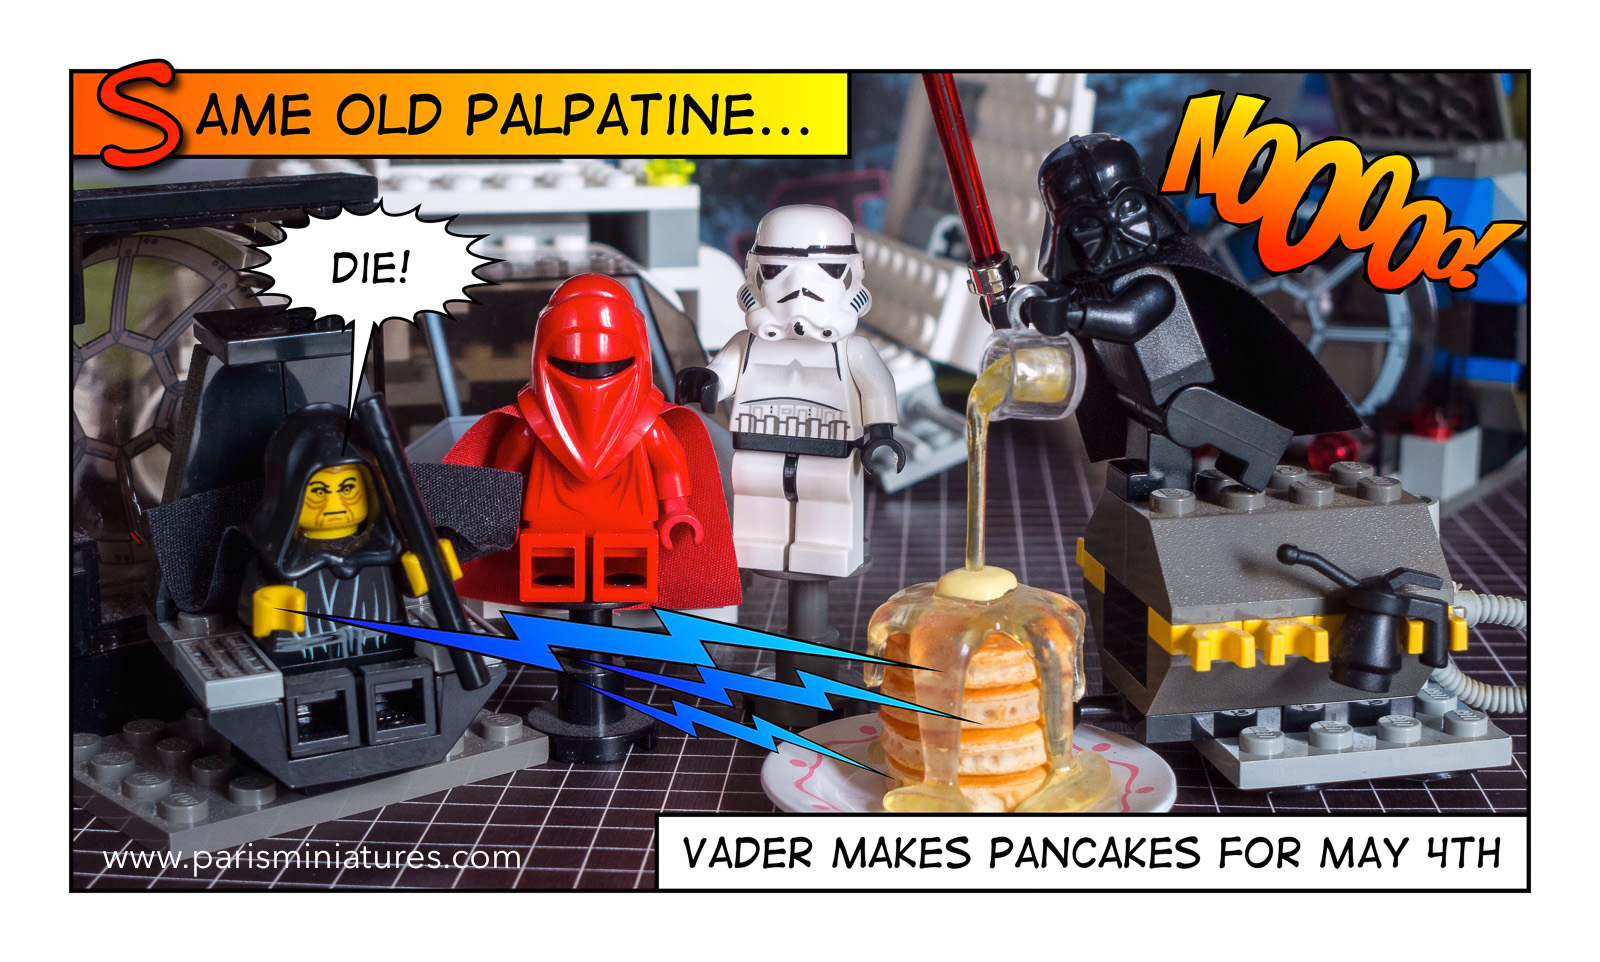 The LEGO Emperor and Vader have breakfast together for May the Fourth Star Wars Day